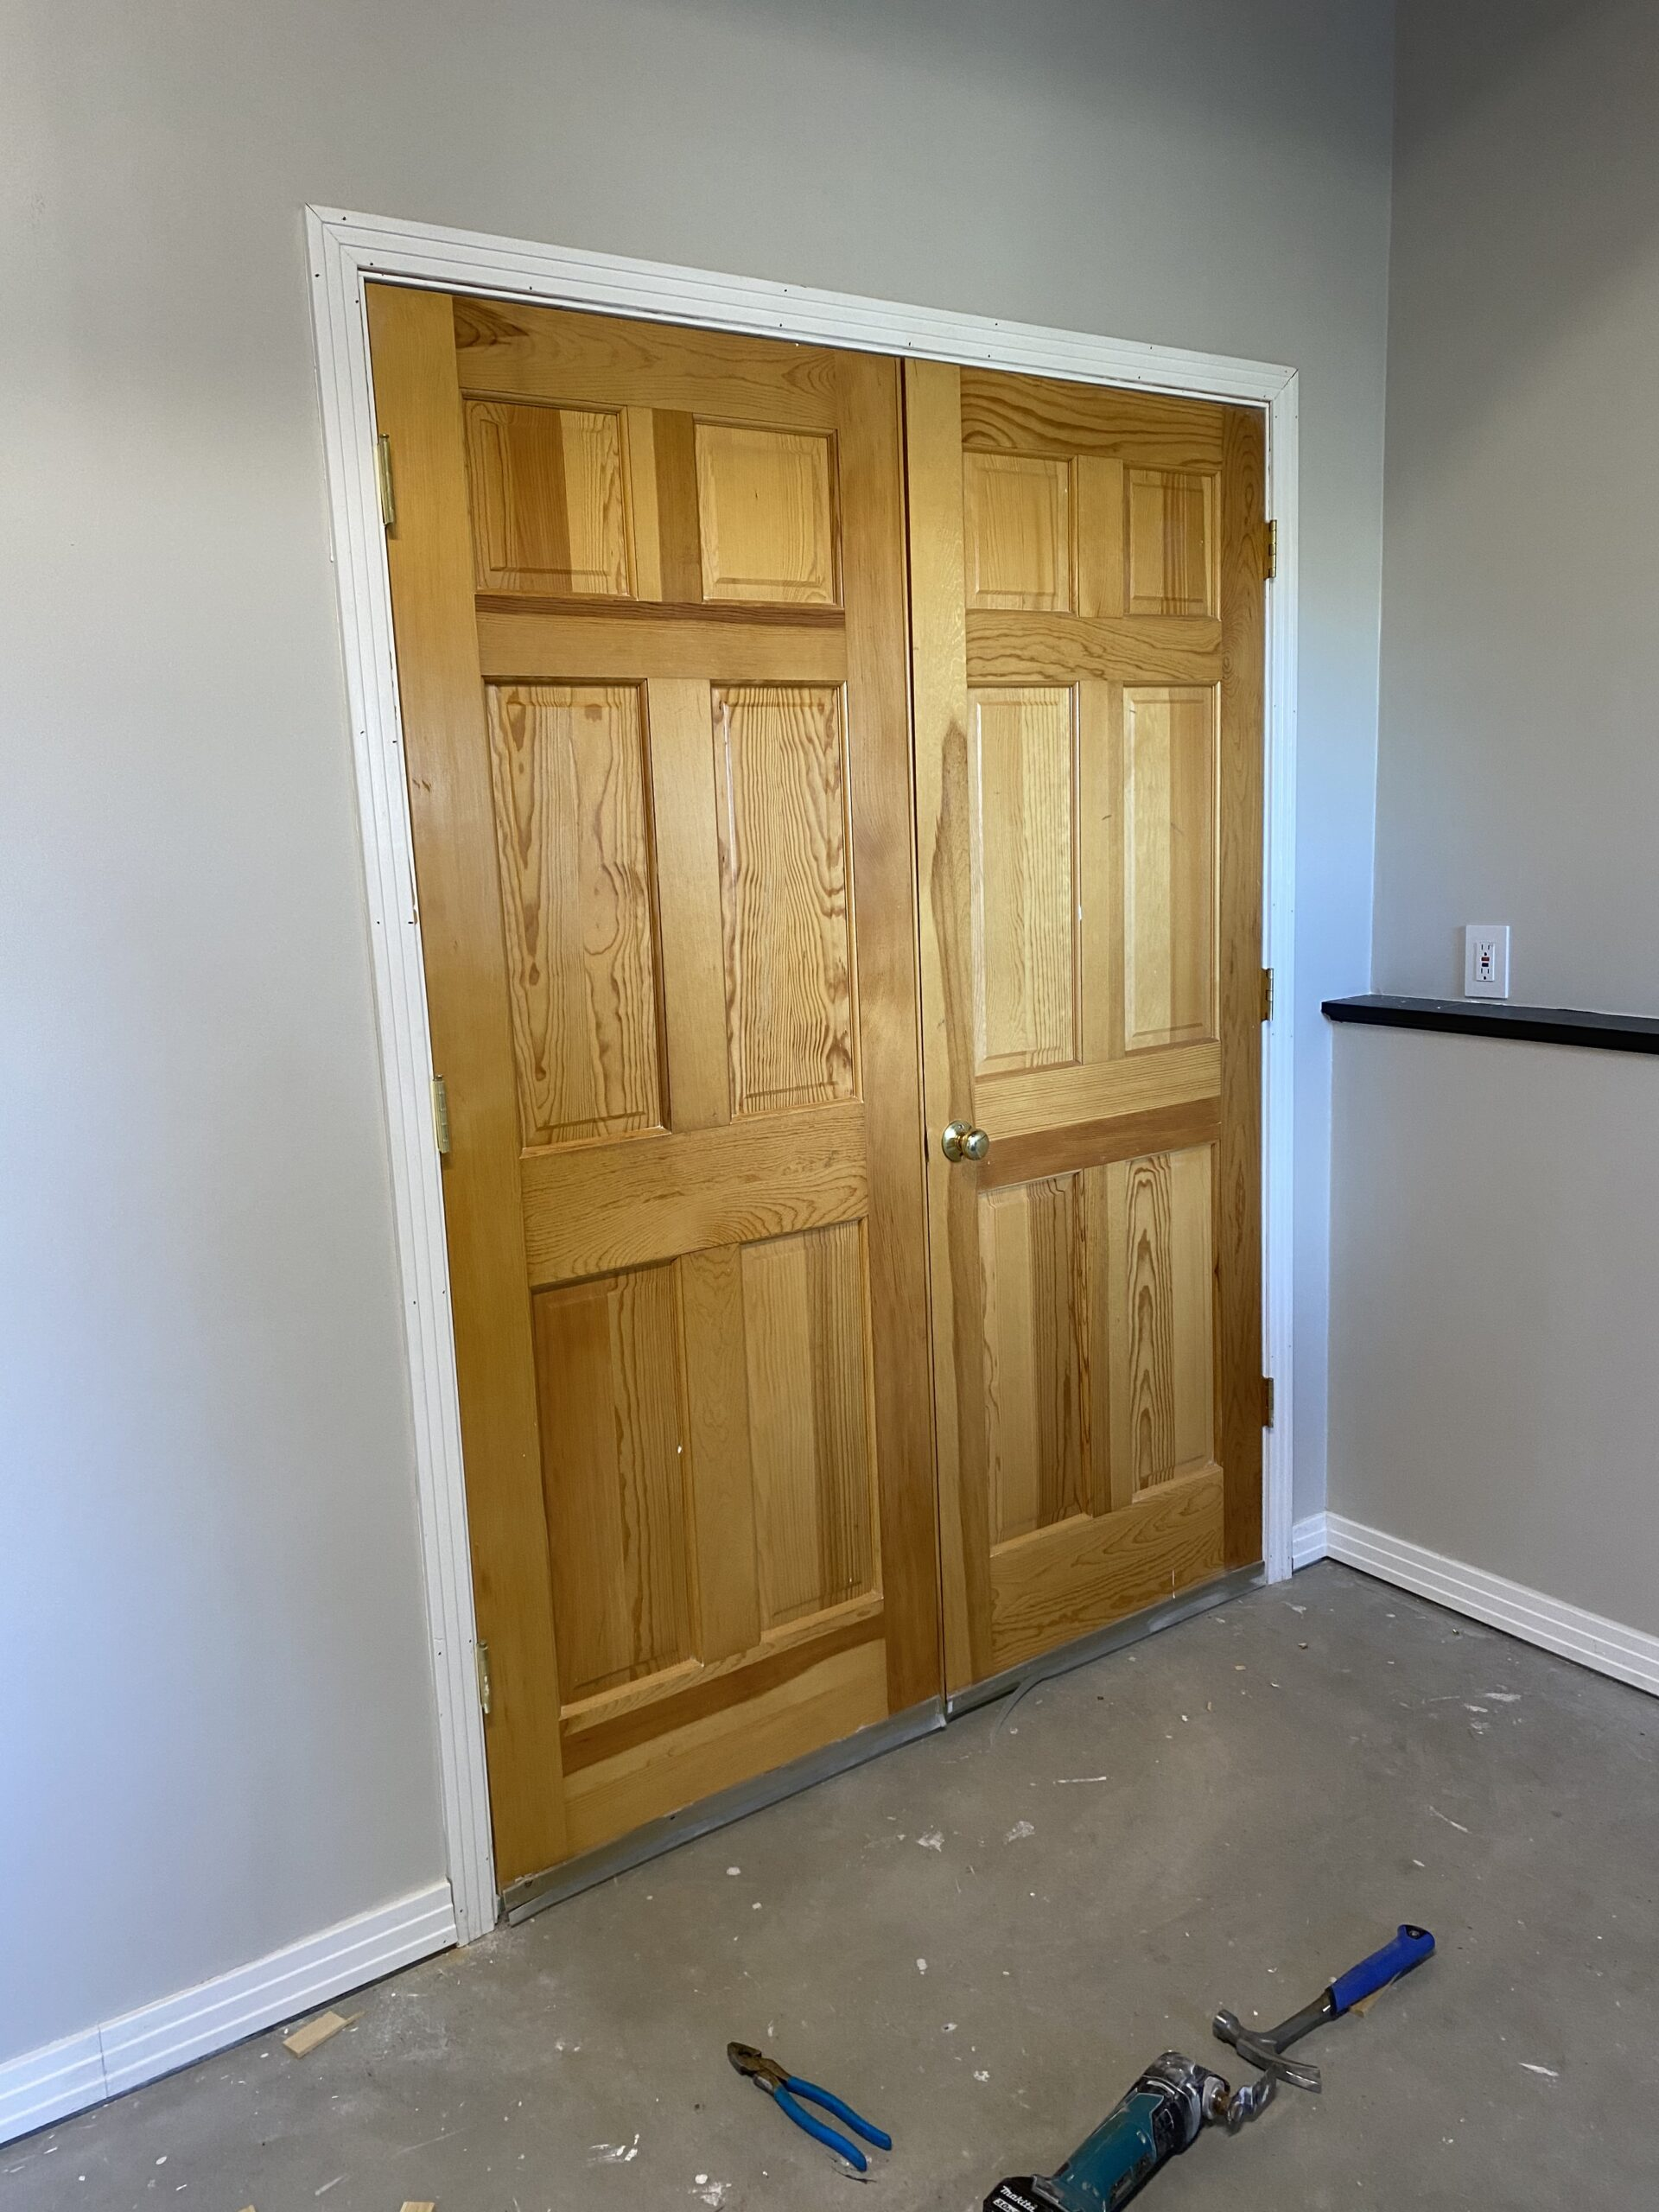 Solid pine 6-panel French doors with trim